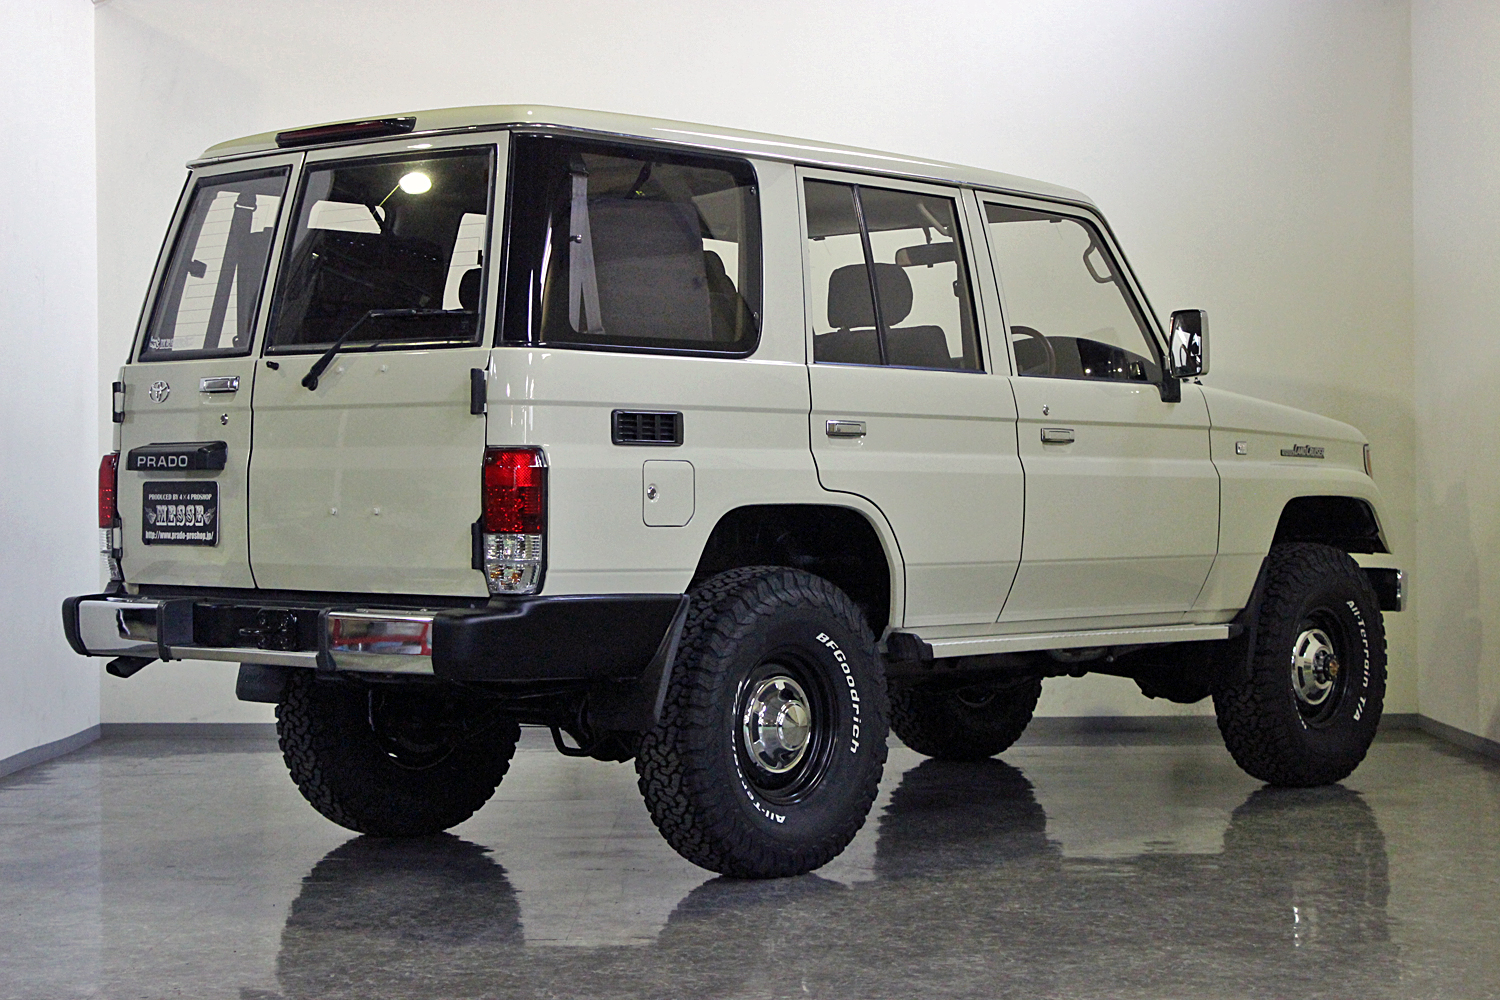 78prado-custom-old-english-white07